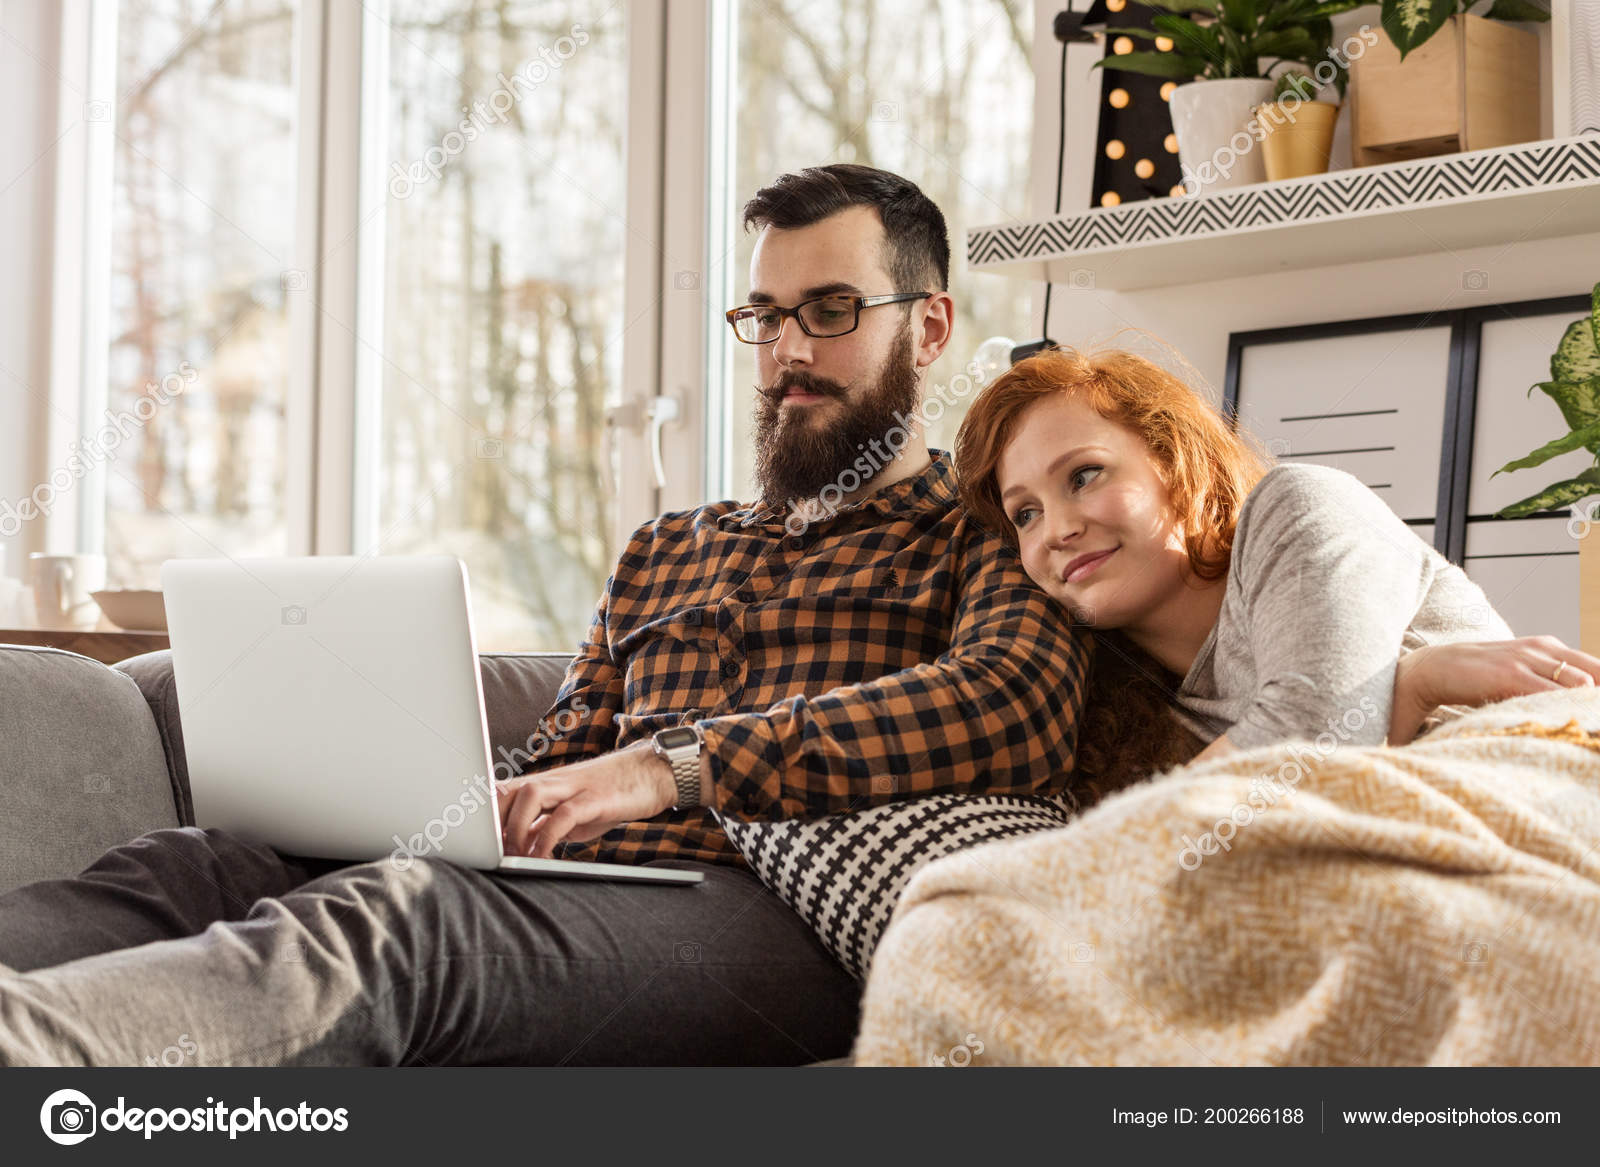 Cuckold While Husband Watches